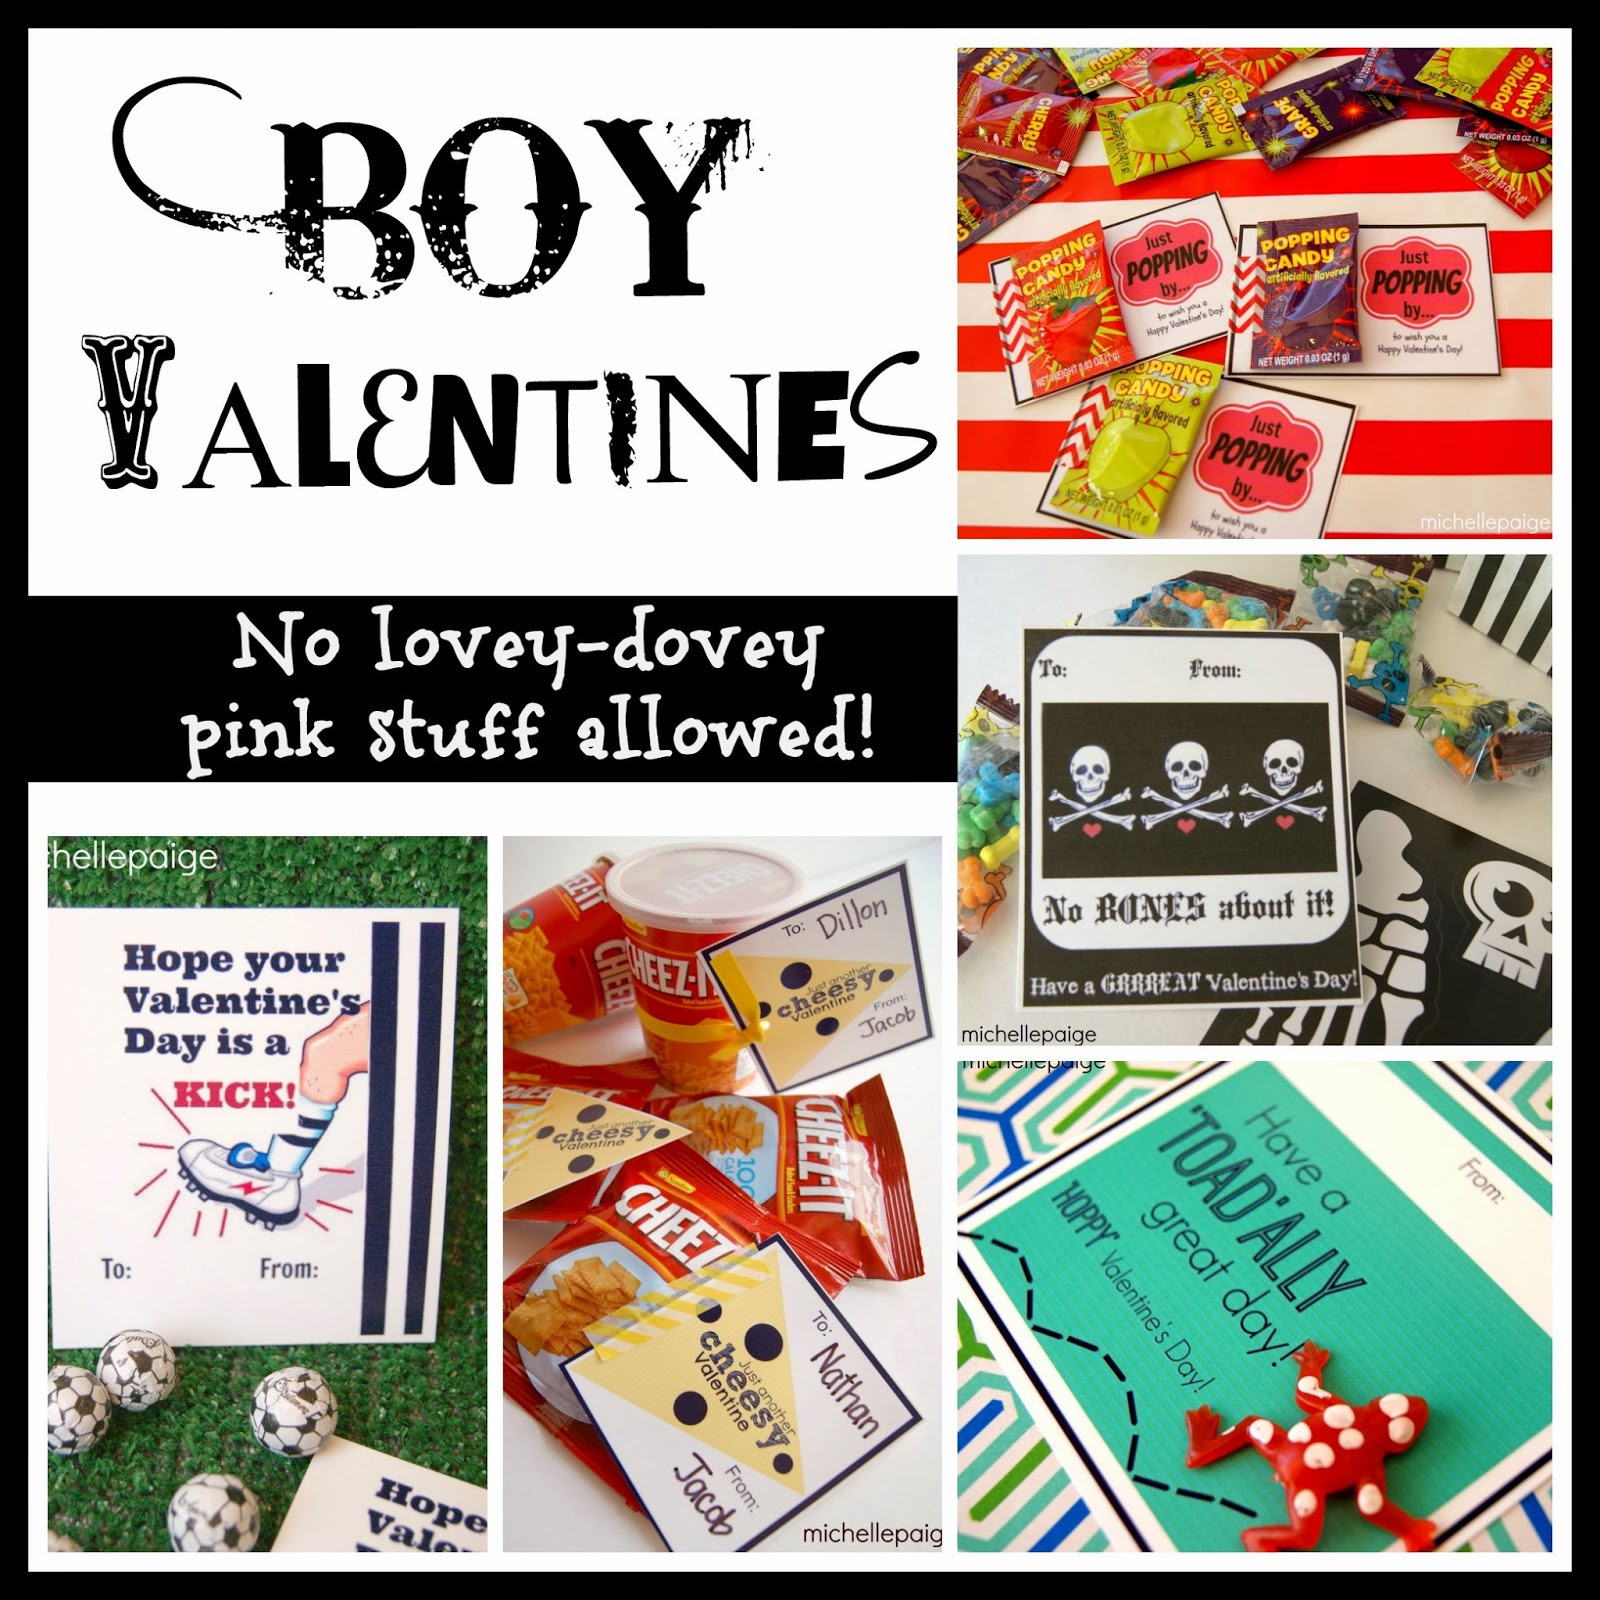 Valentines Gift Ideas For Boys  michelle paige blogs Reese s Peanut Butter Cups